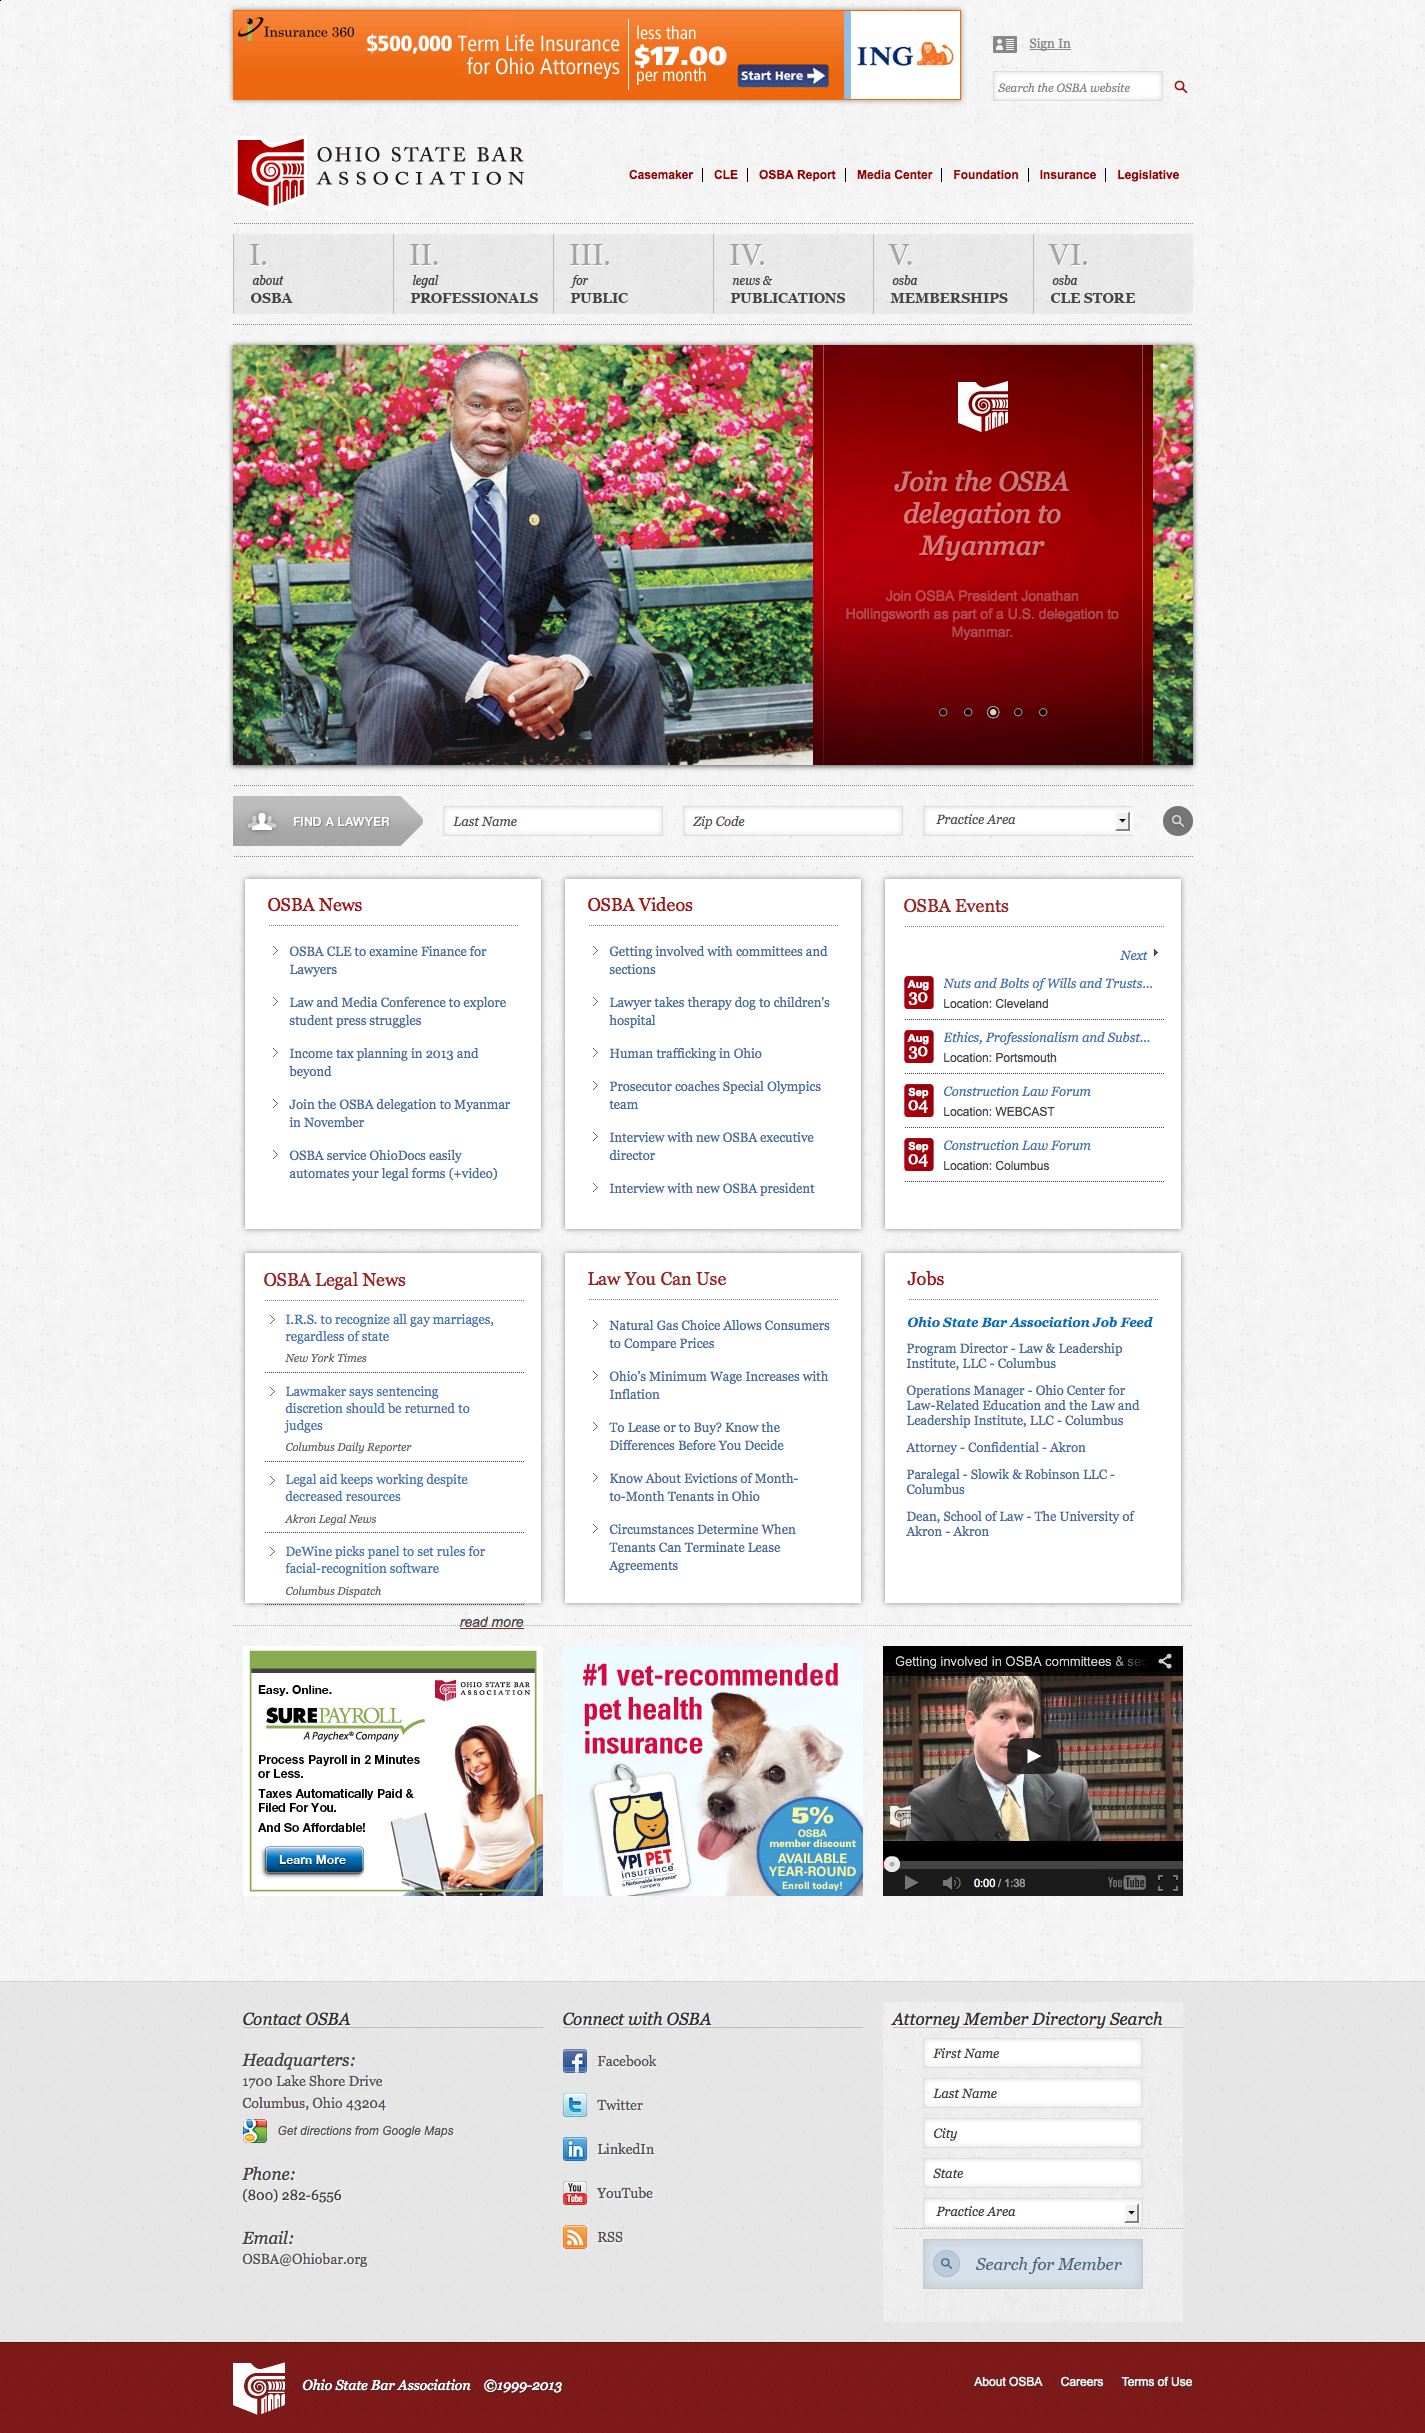 Ohio Bar Association Ohio state, Website design, Ohio